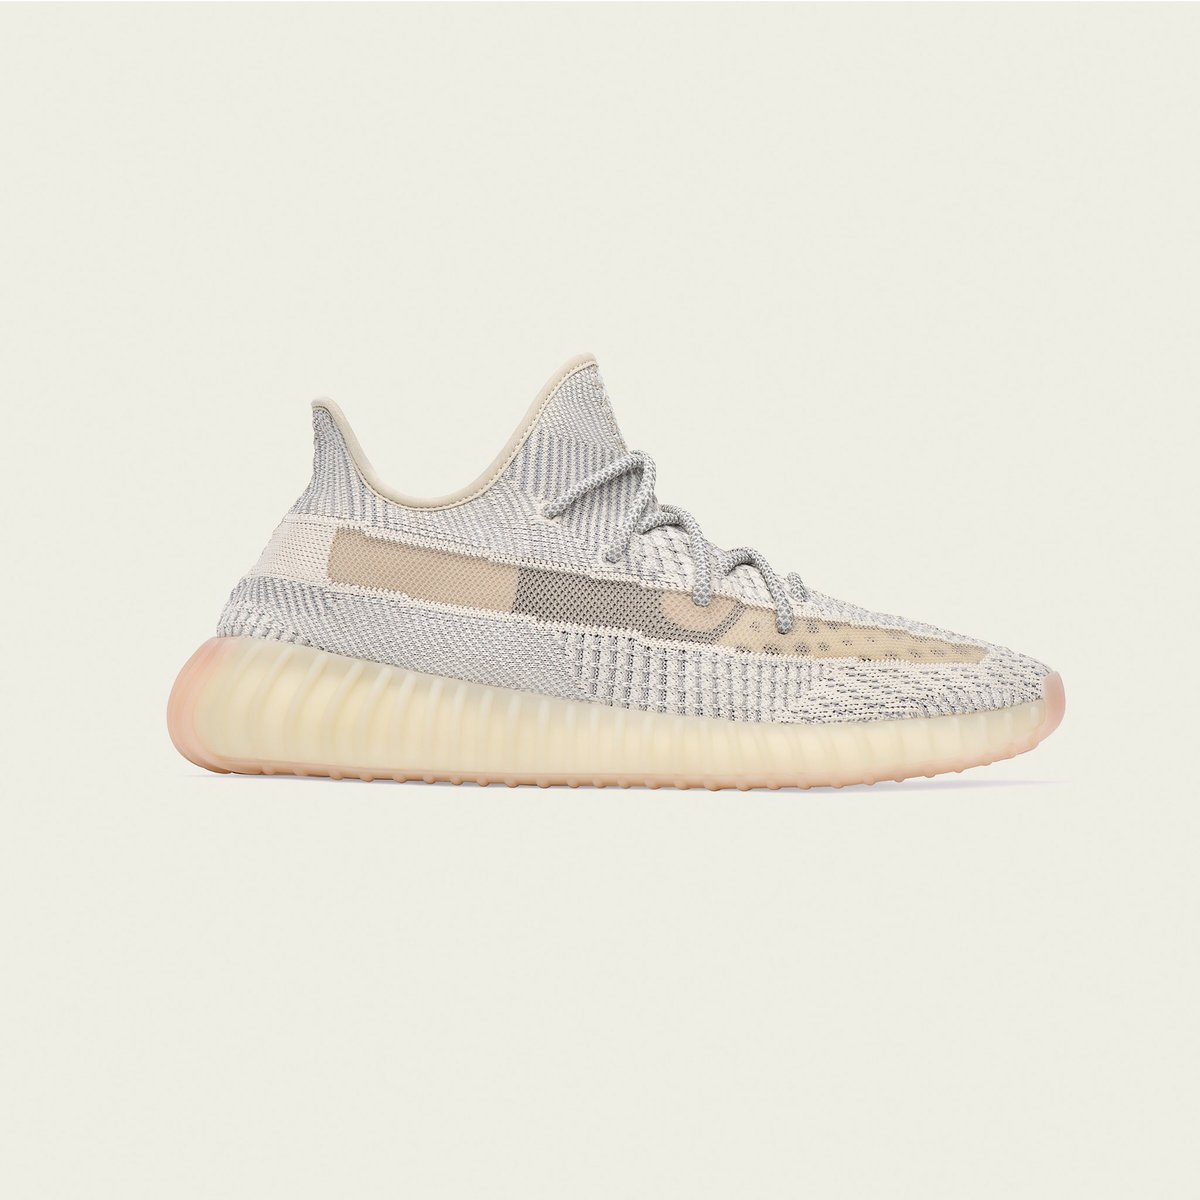 premium selection 0b00f 55757 YEEZY BOOST 350 V2 STATIC NON-REFLECTIVE. AVAILABLE DECEMBER ...